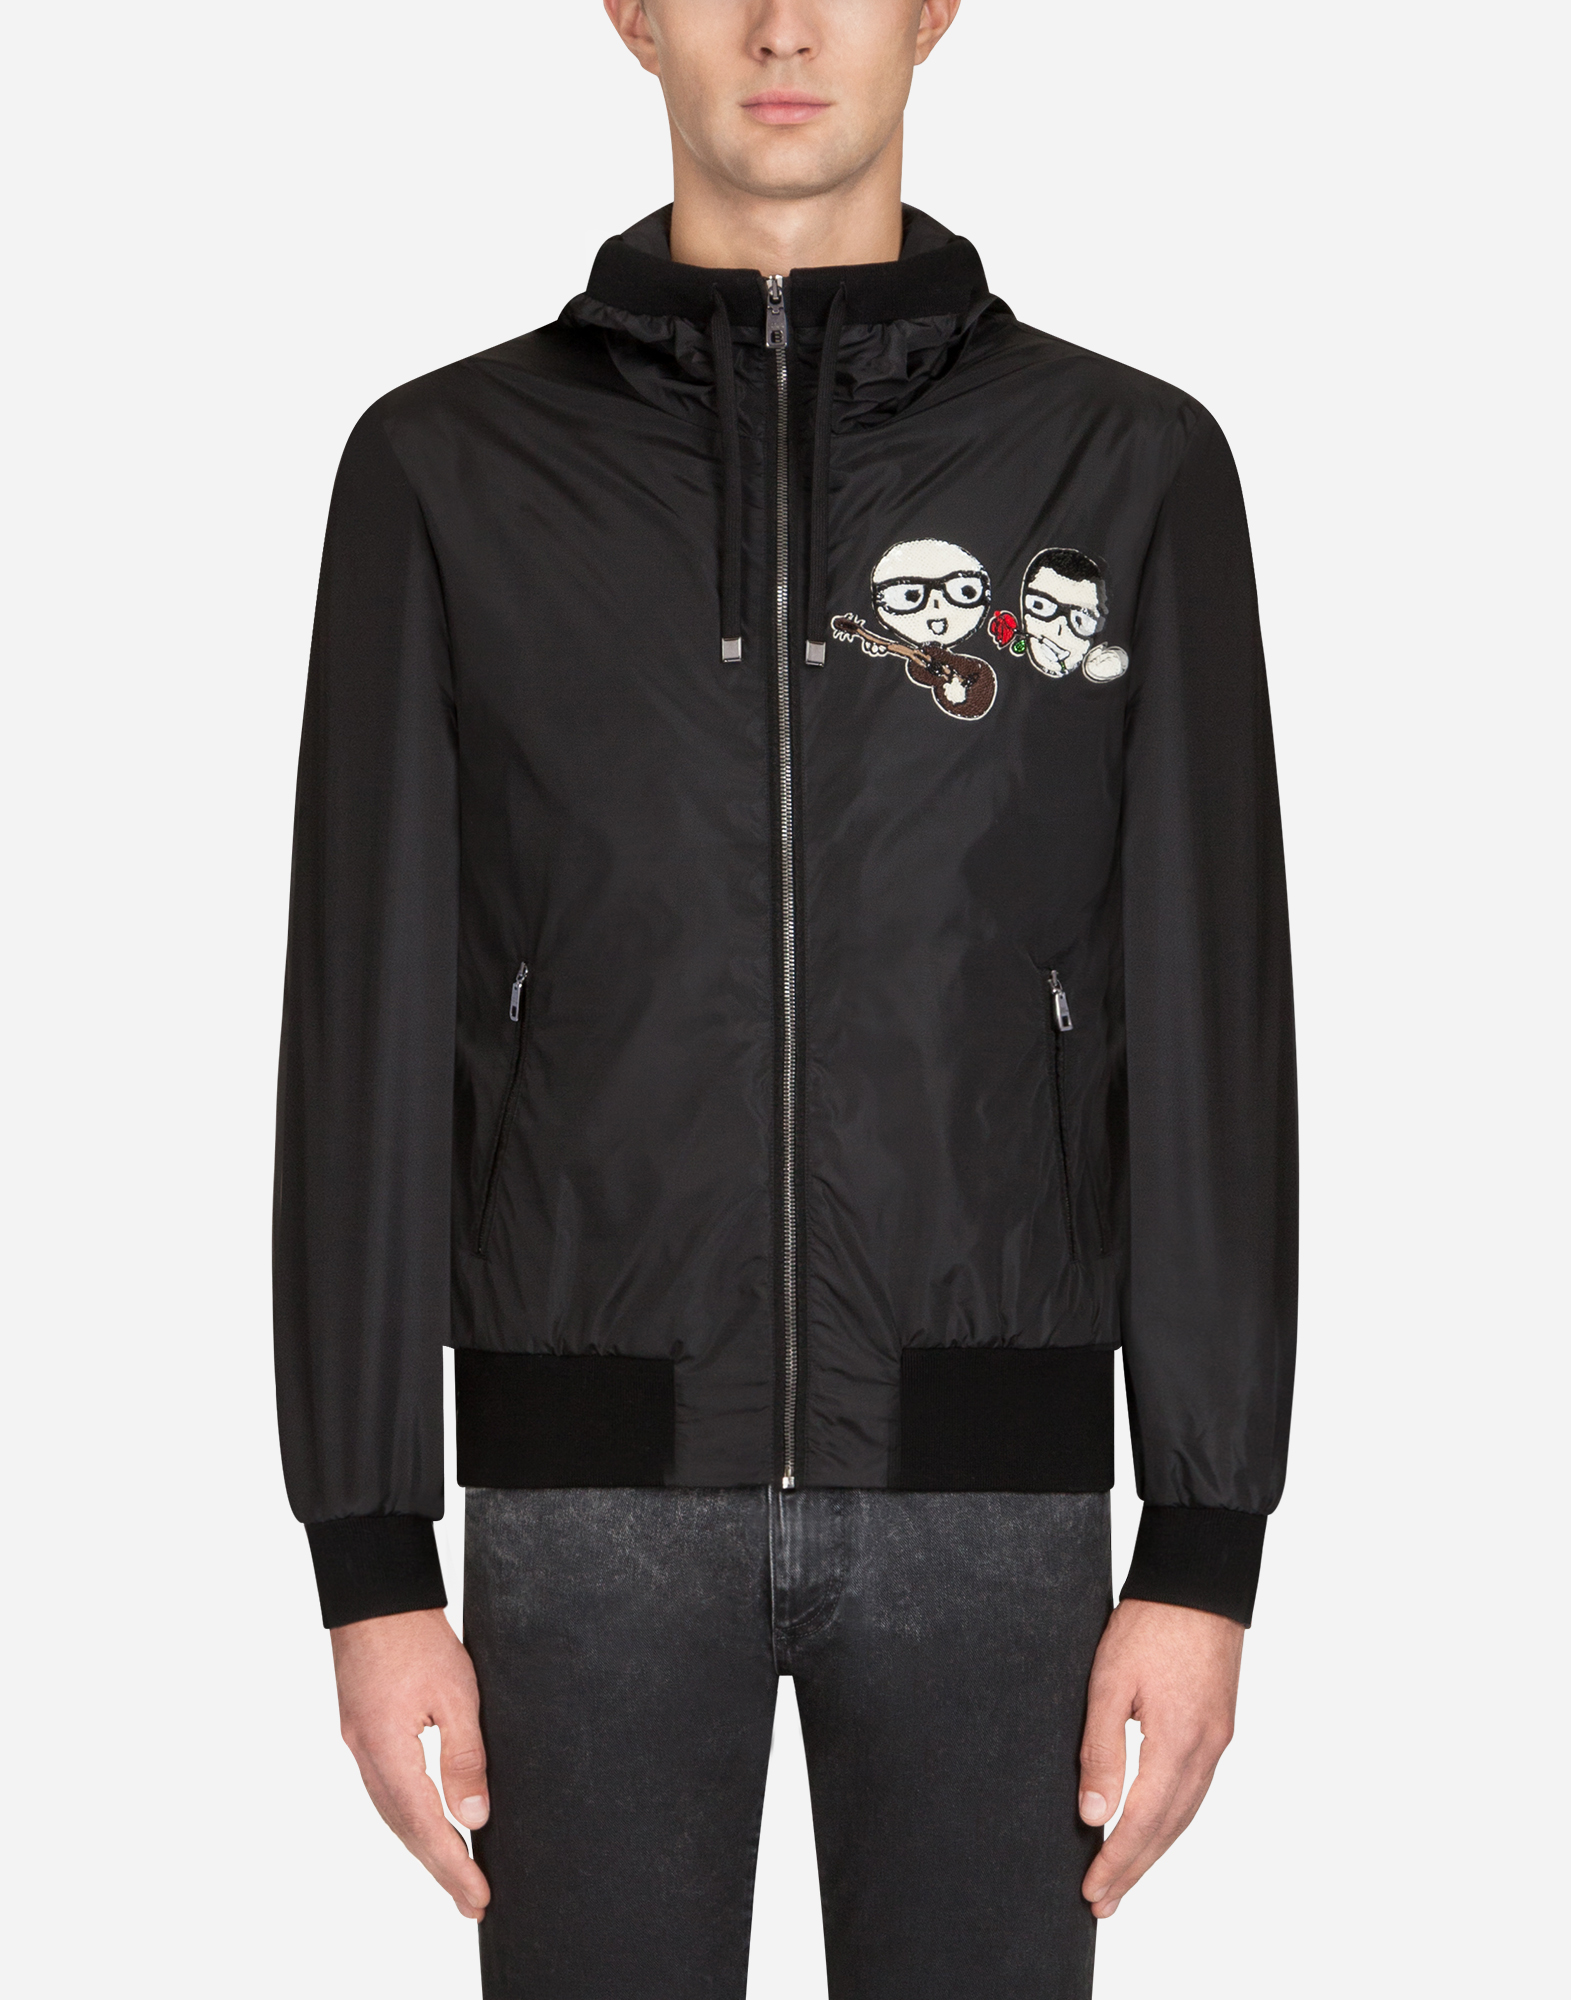 Dolce & Gabbana COTTON SWEATSHIRT WITH DESIGNERS' PATCHES AND HOOD